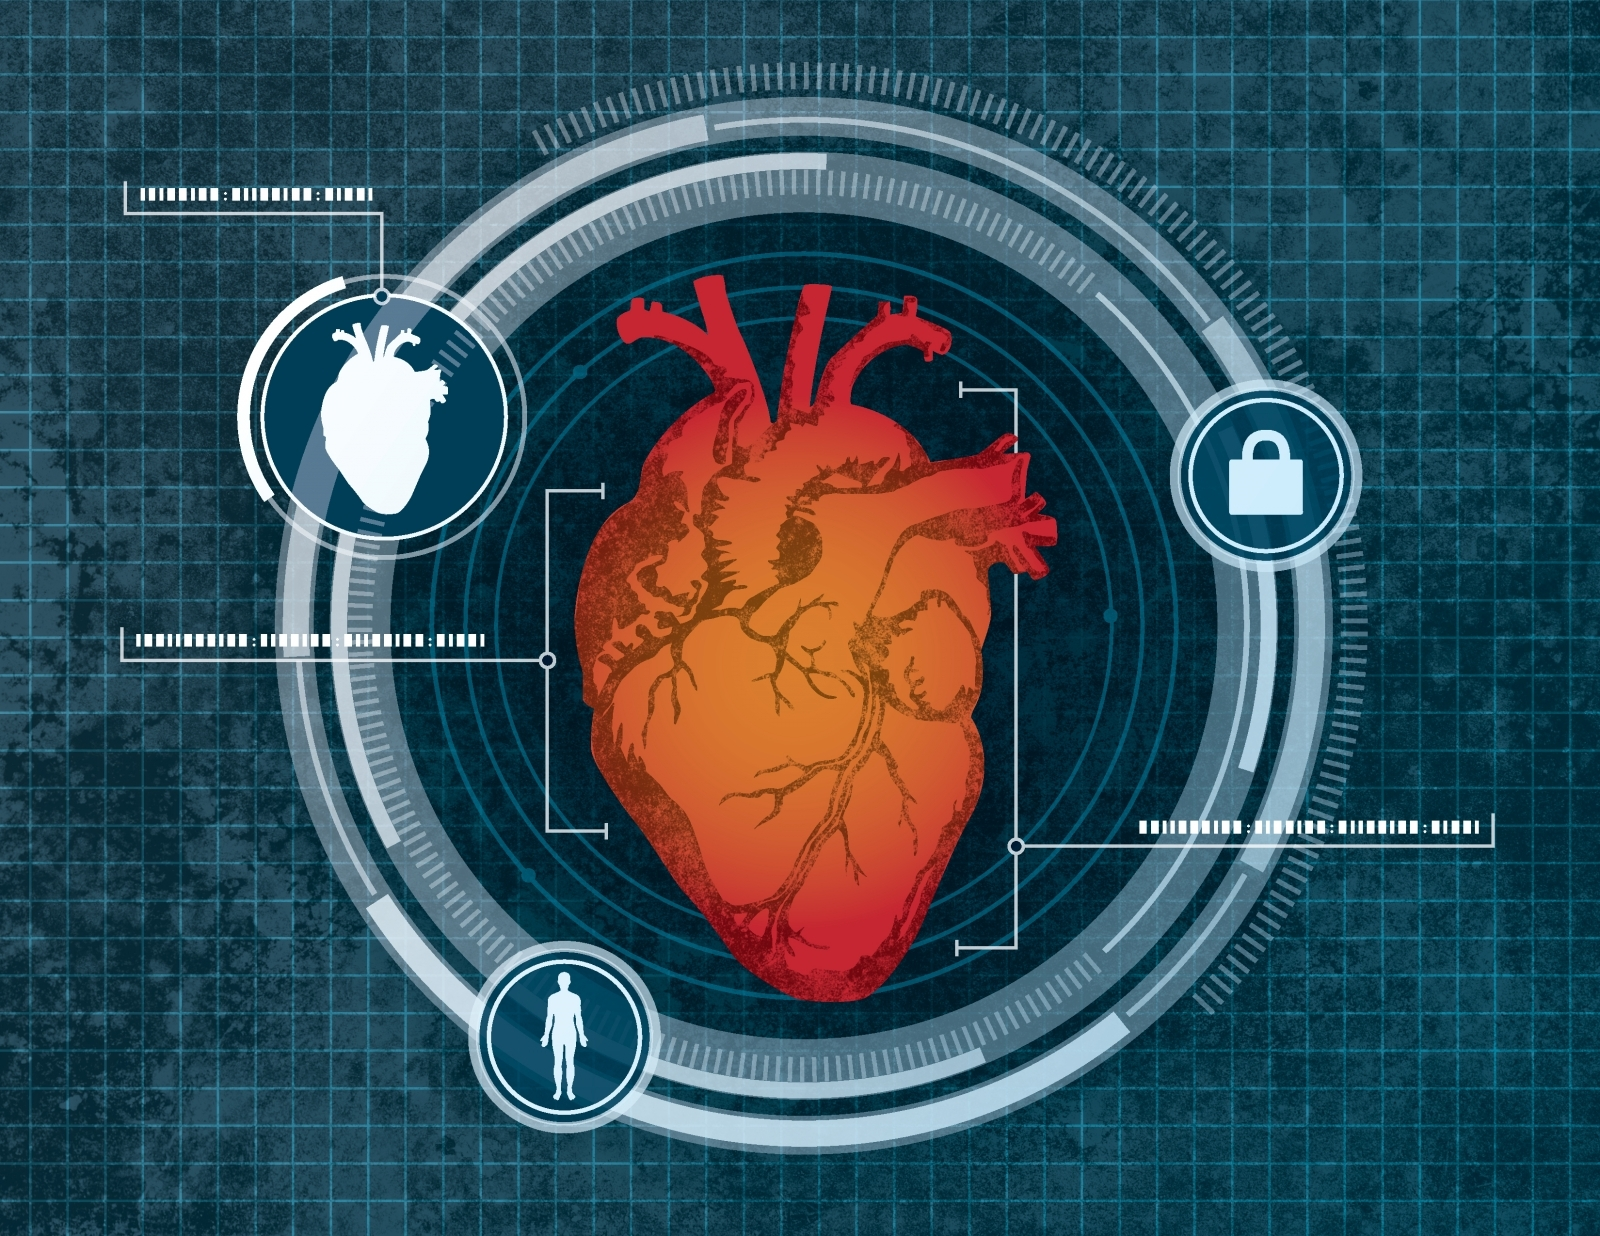 Your heart could soon be used as a password to unlock computers